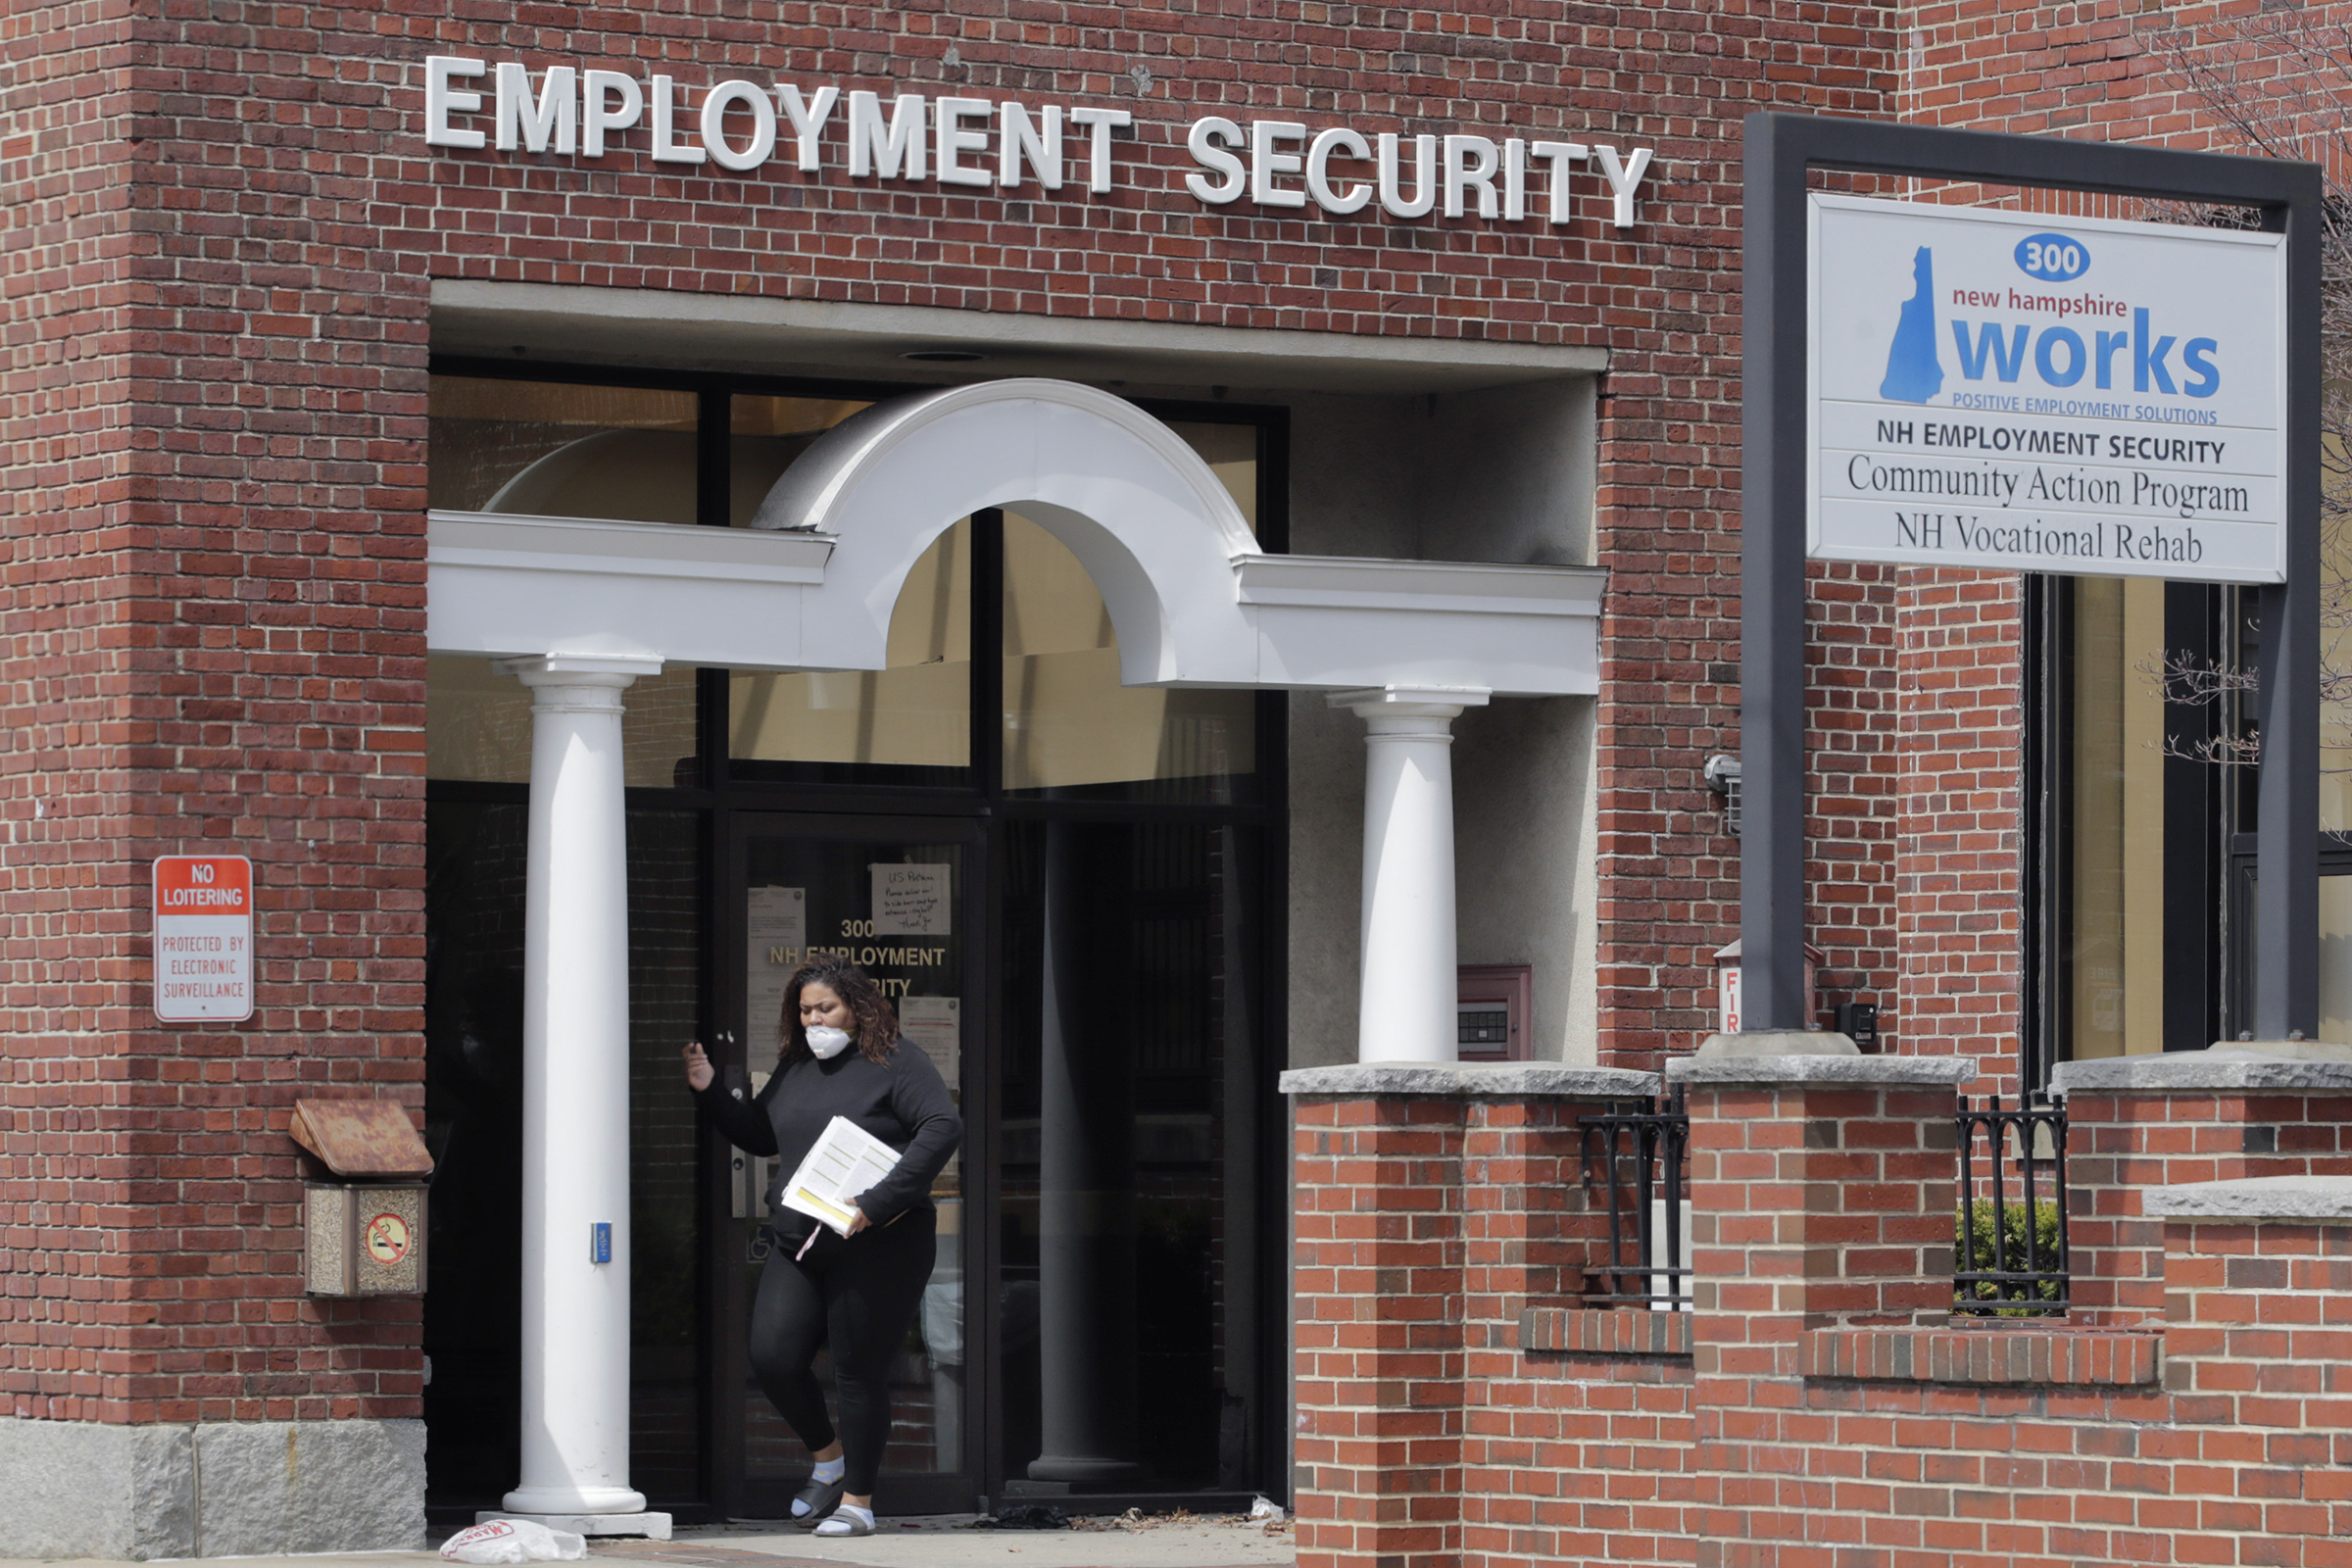 A woman walks away from a locked door at the New Hampshire Employee Security center, which handles unemployment claims, in Manchester, N.H., on April 16, 2020.